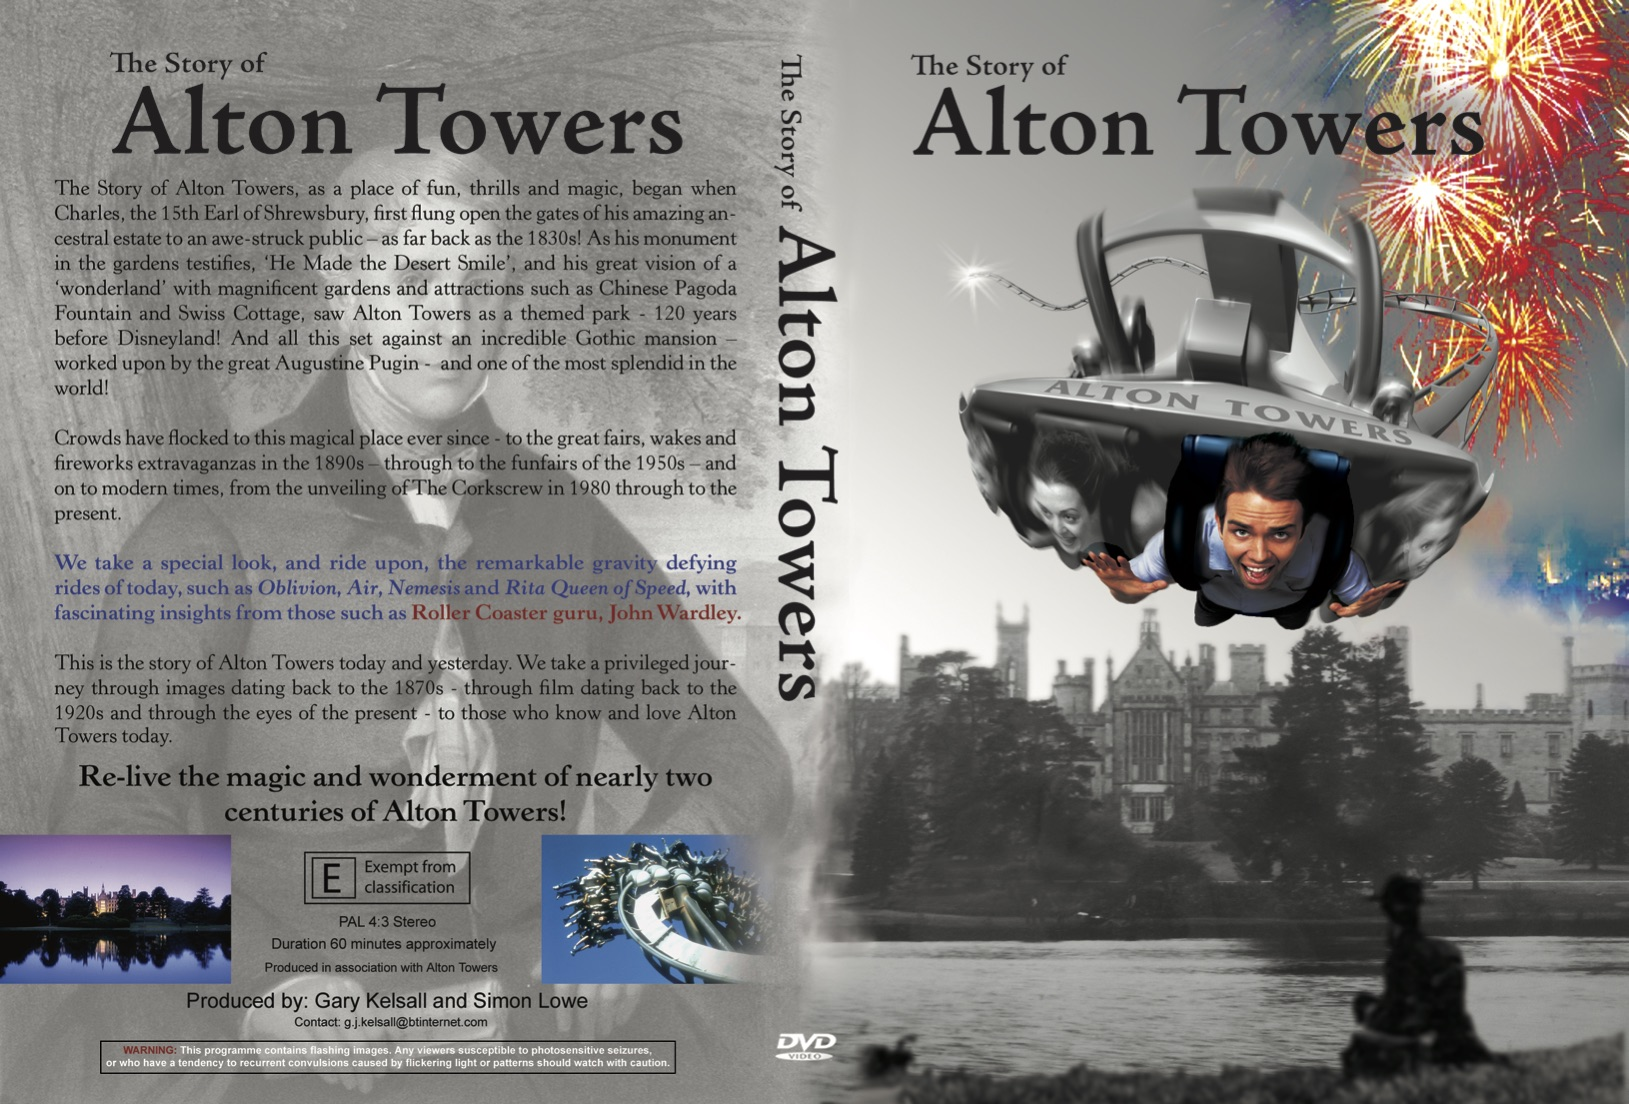 DVD Sleeve for 'The Story of Alton Towers'